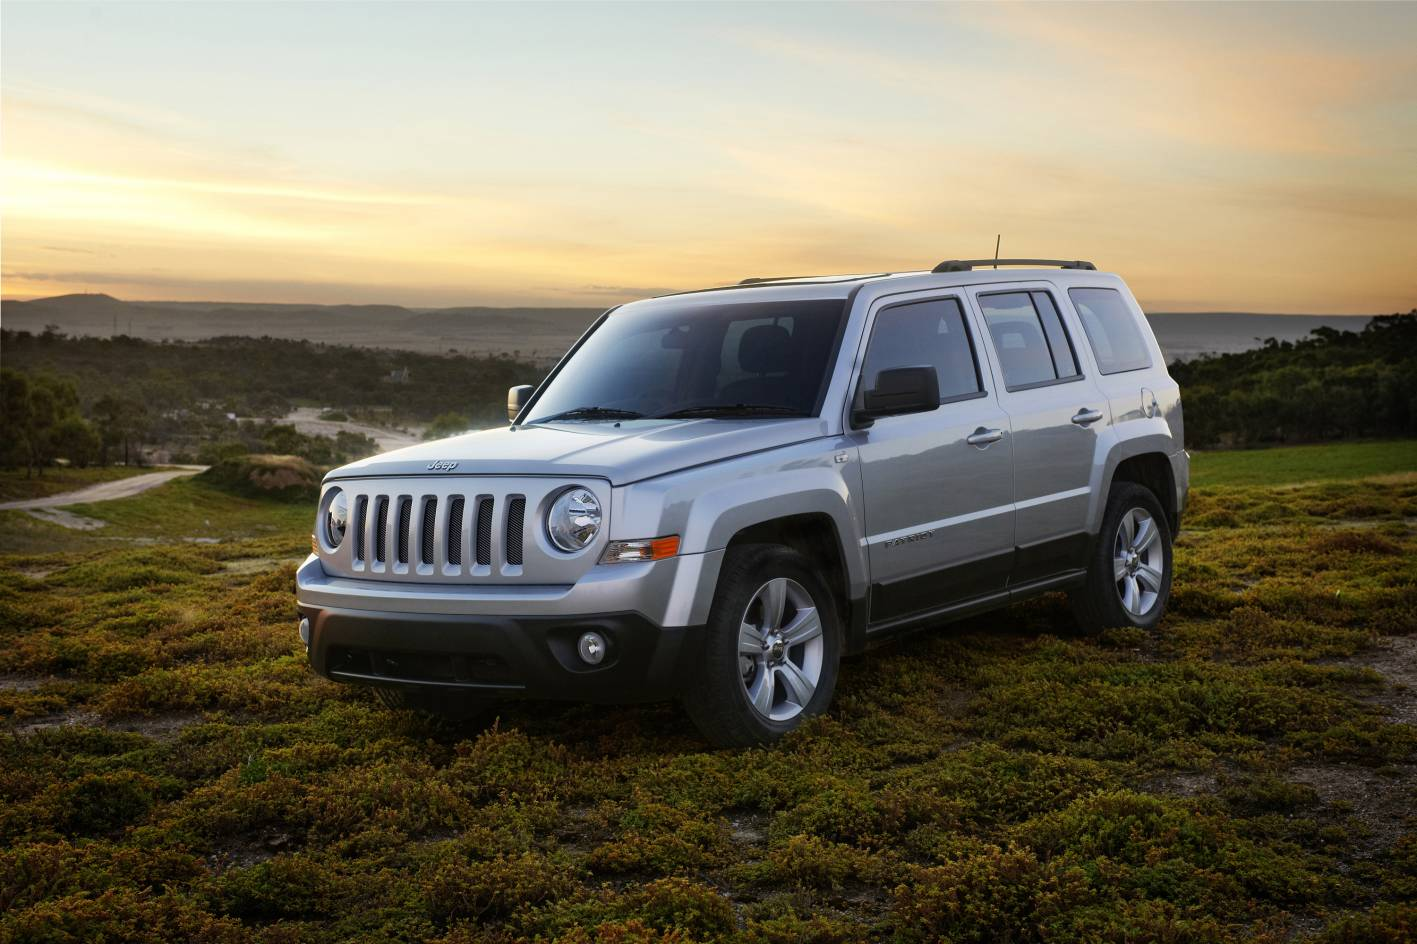 2012 Jeep Patriot #6